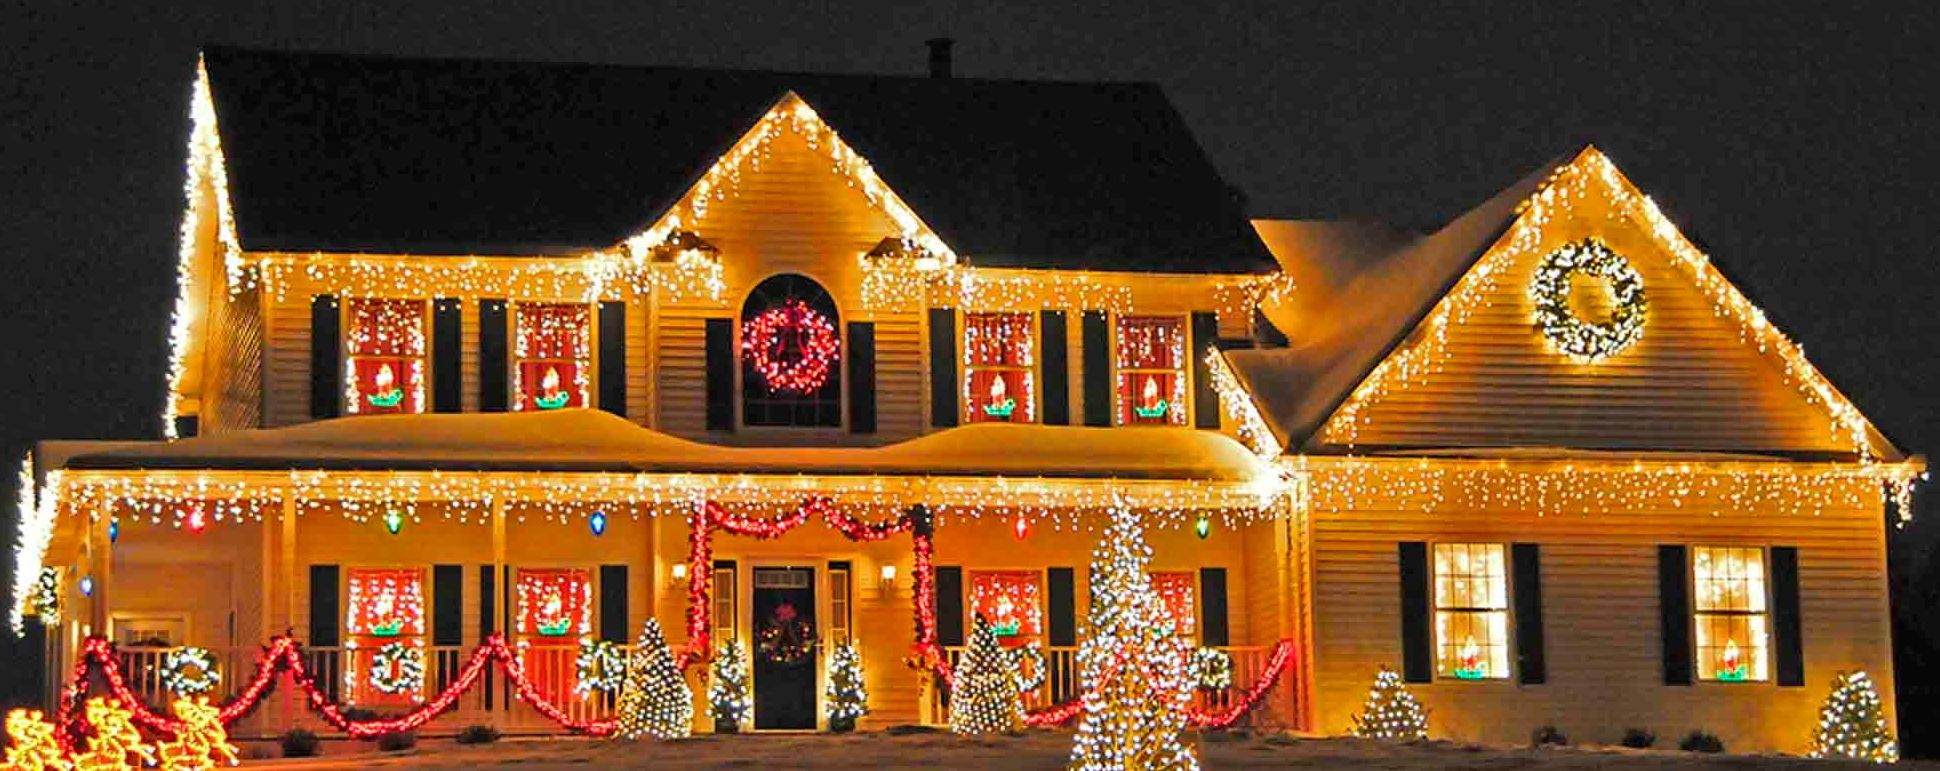 Best Images About Beautiful Christmas Lights On Pinterest